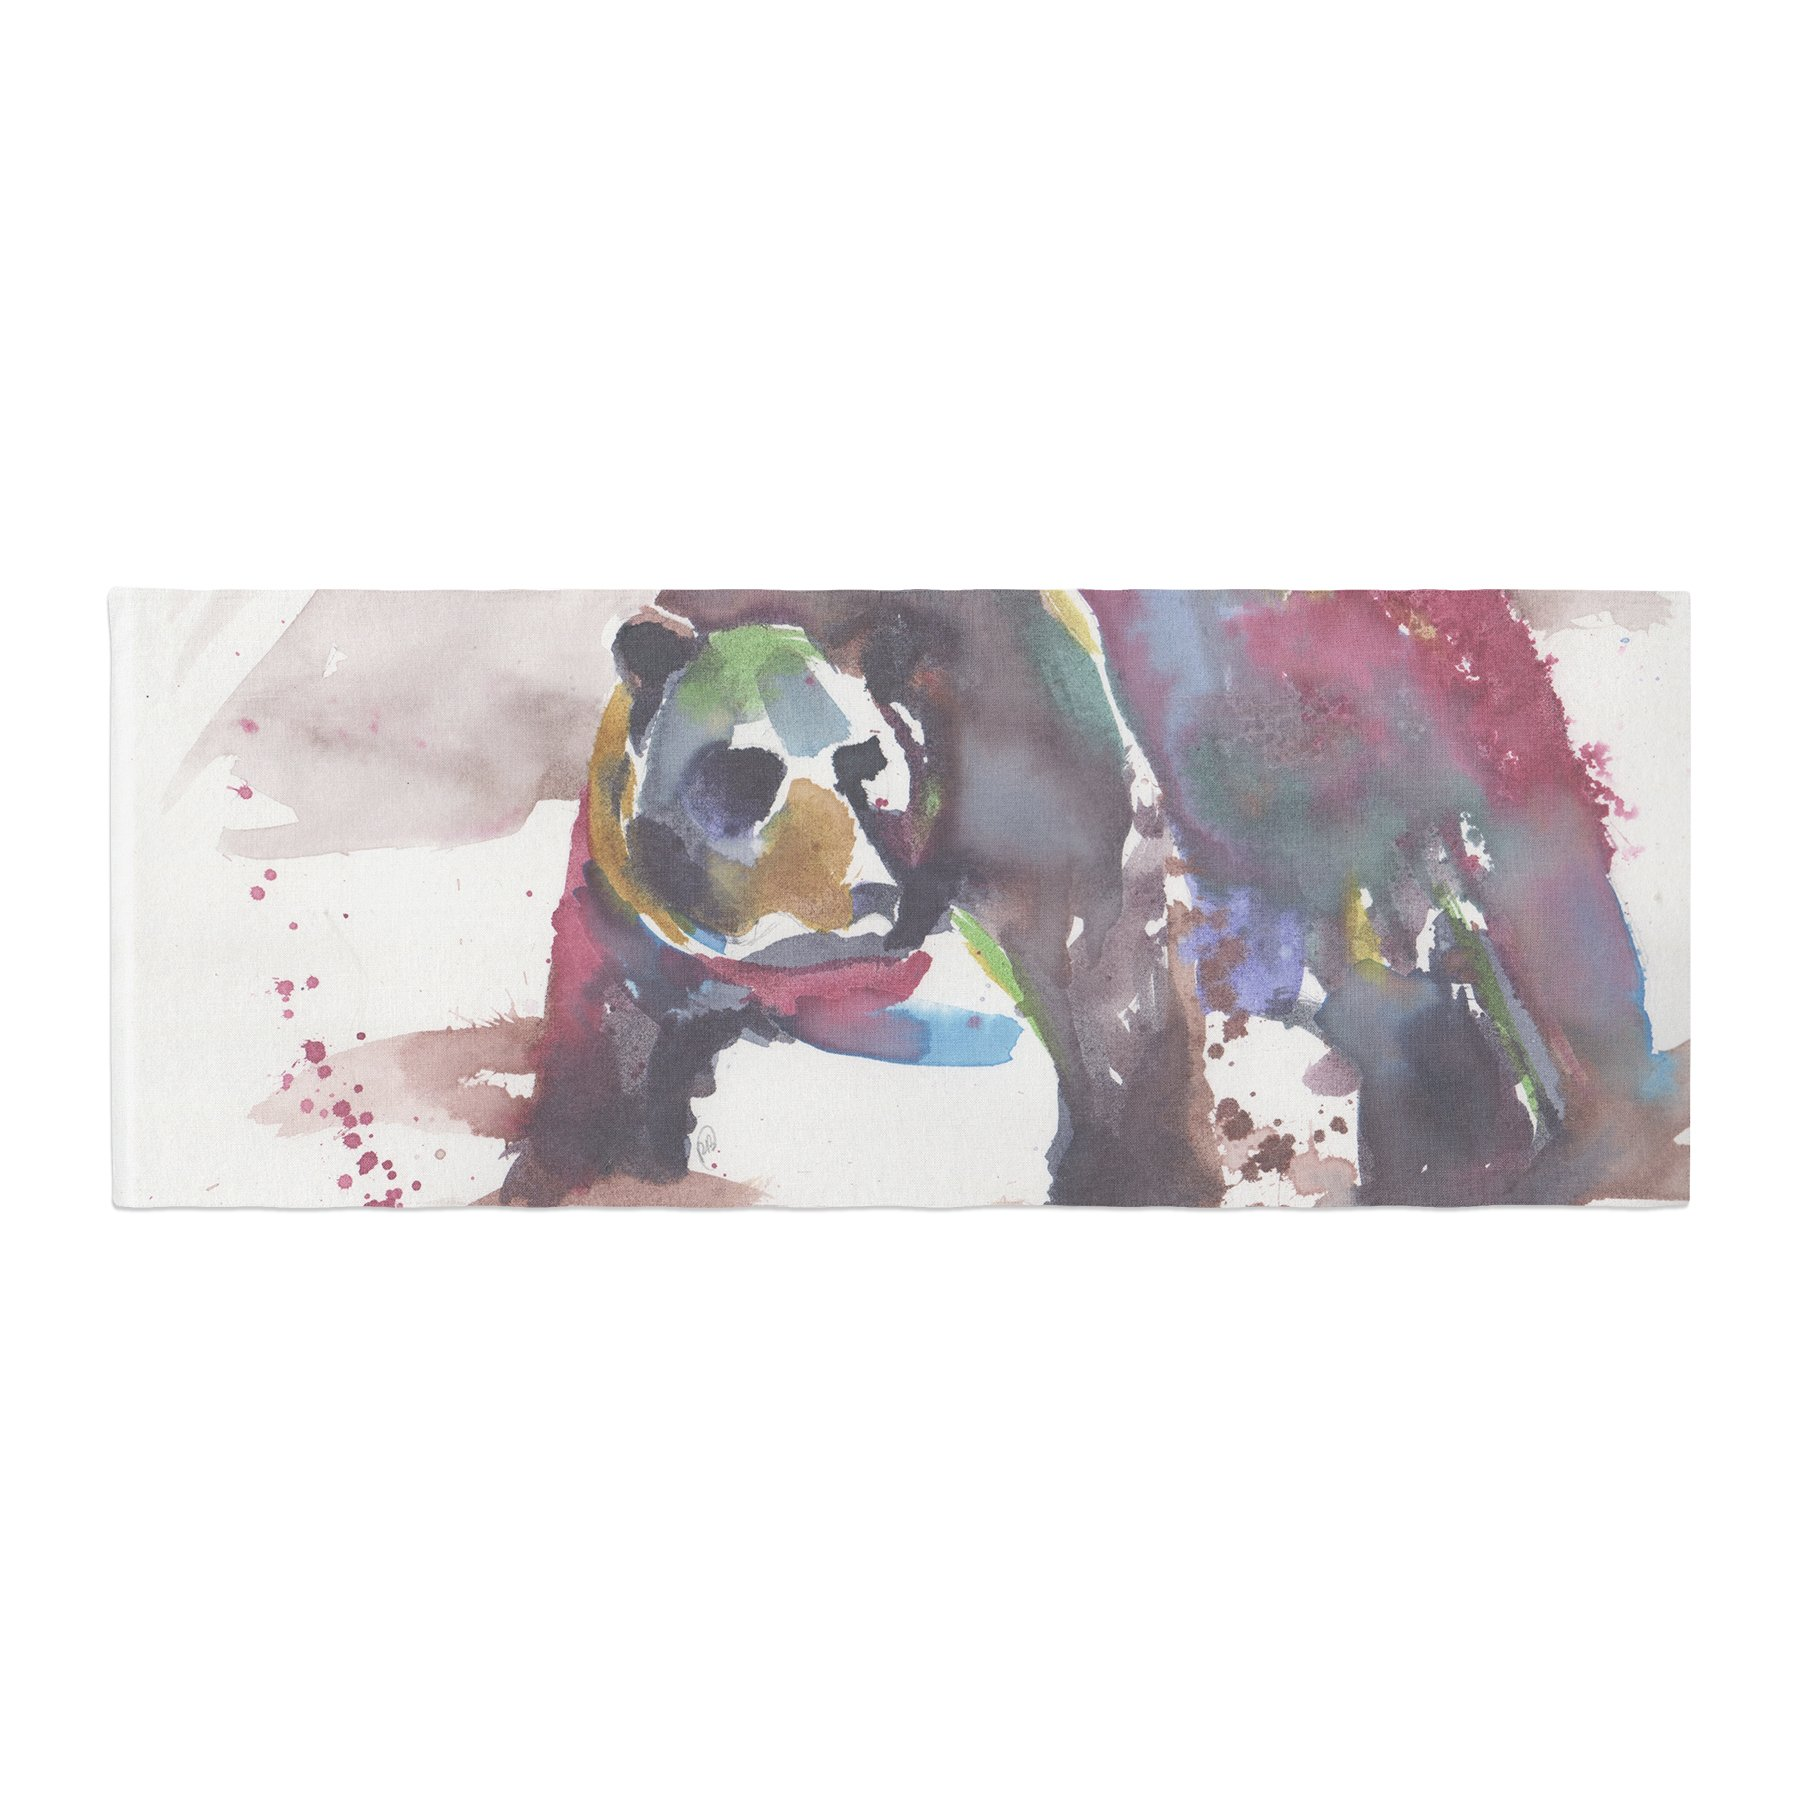 Kess InHouse Rebecca Bender Grizzly Bear Watercolor Abstract Animal Bed Runner, 34'' x 86''